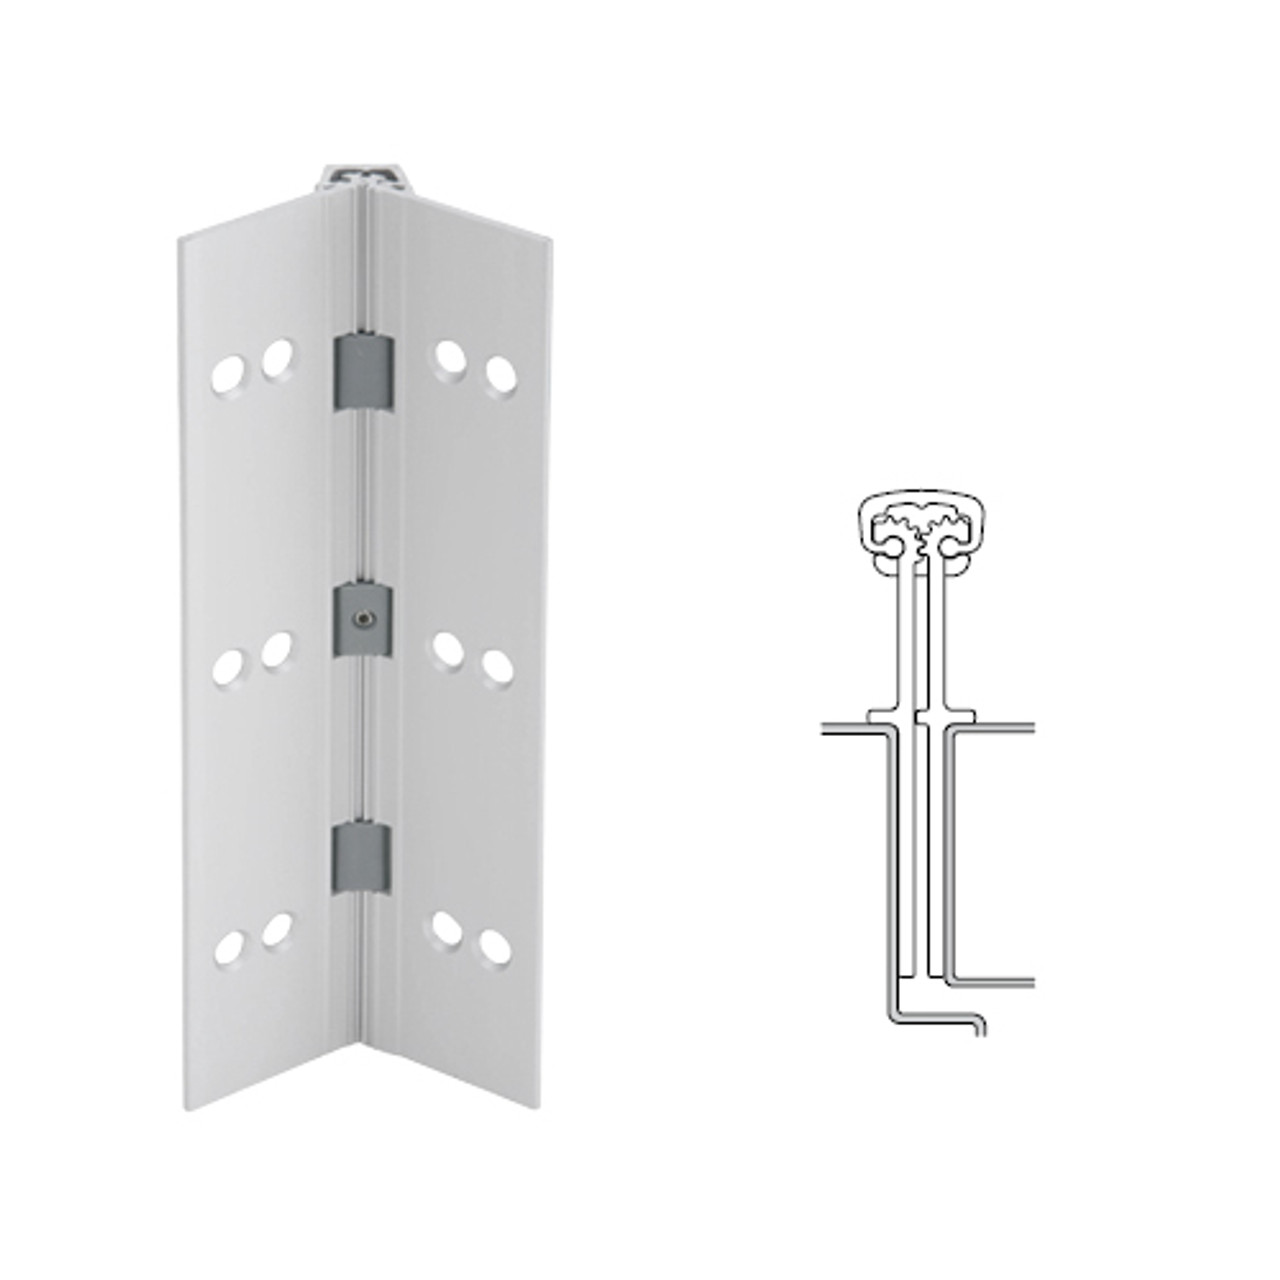 040XY-US28-120-SECWDWD IVES Full Mortise Continuous Geared Hinges with Security Screws - Hex Pin Drive in Satin Aluminum